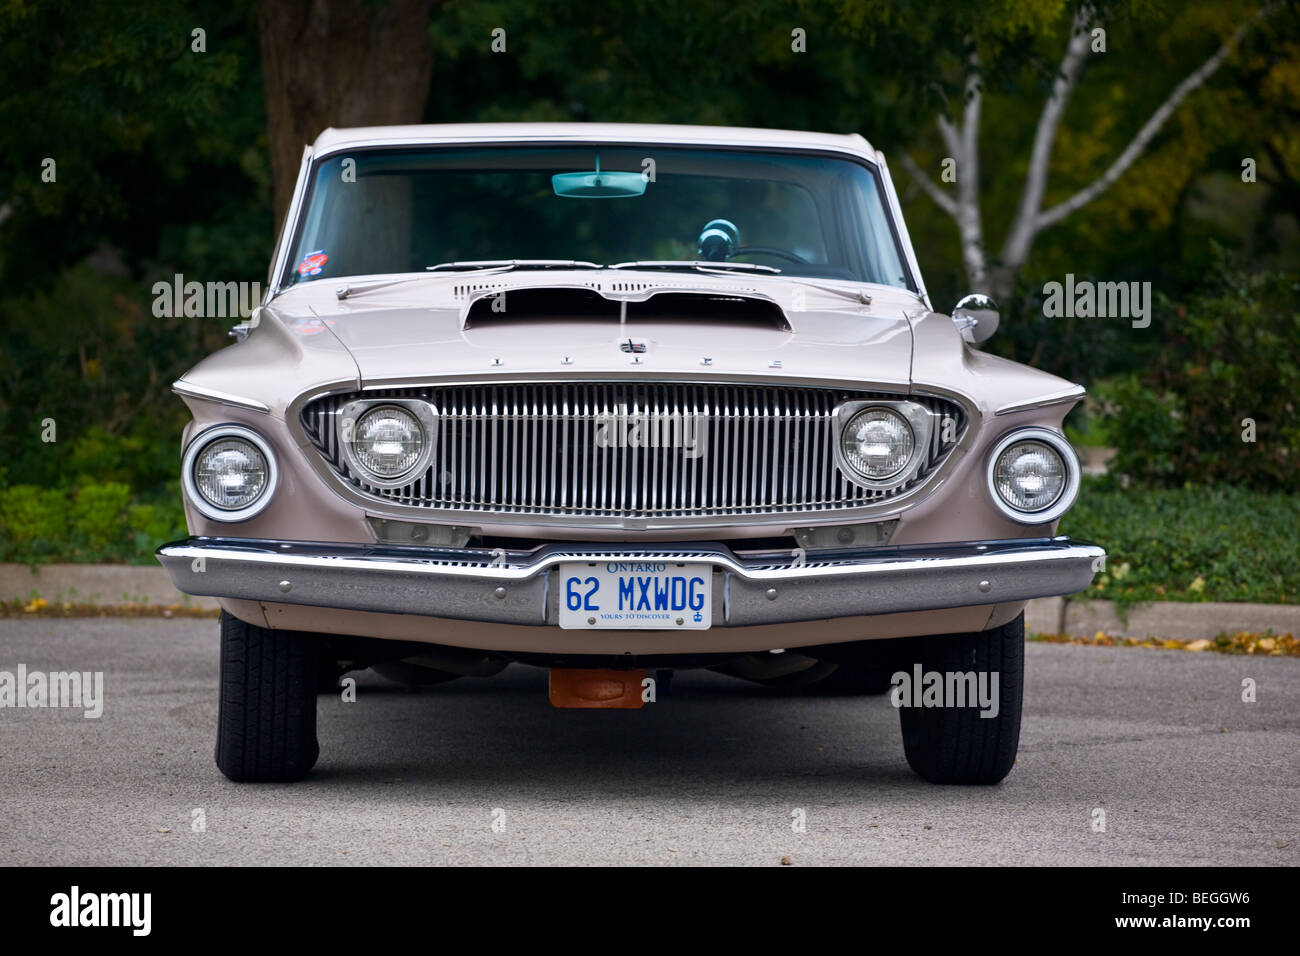 Classic Car Dodge Dart High Resolution Stock Photography And Images Alamy